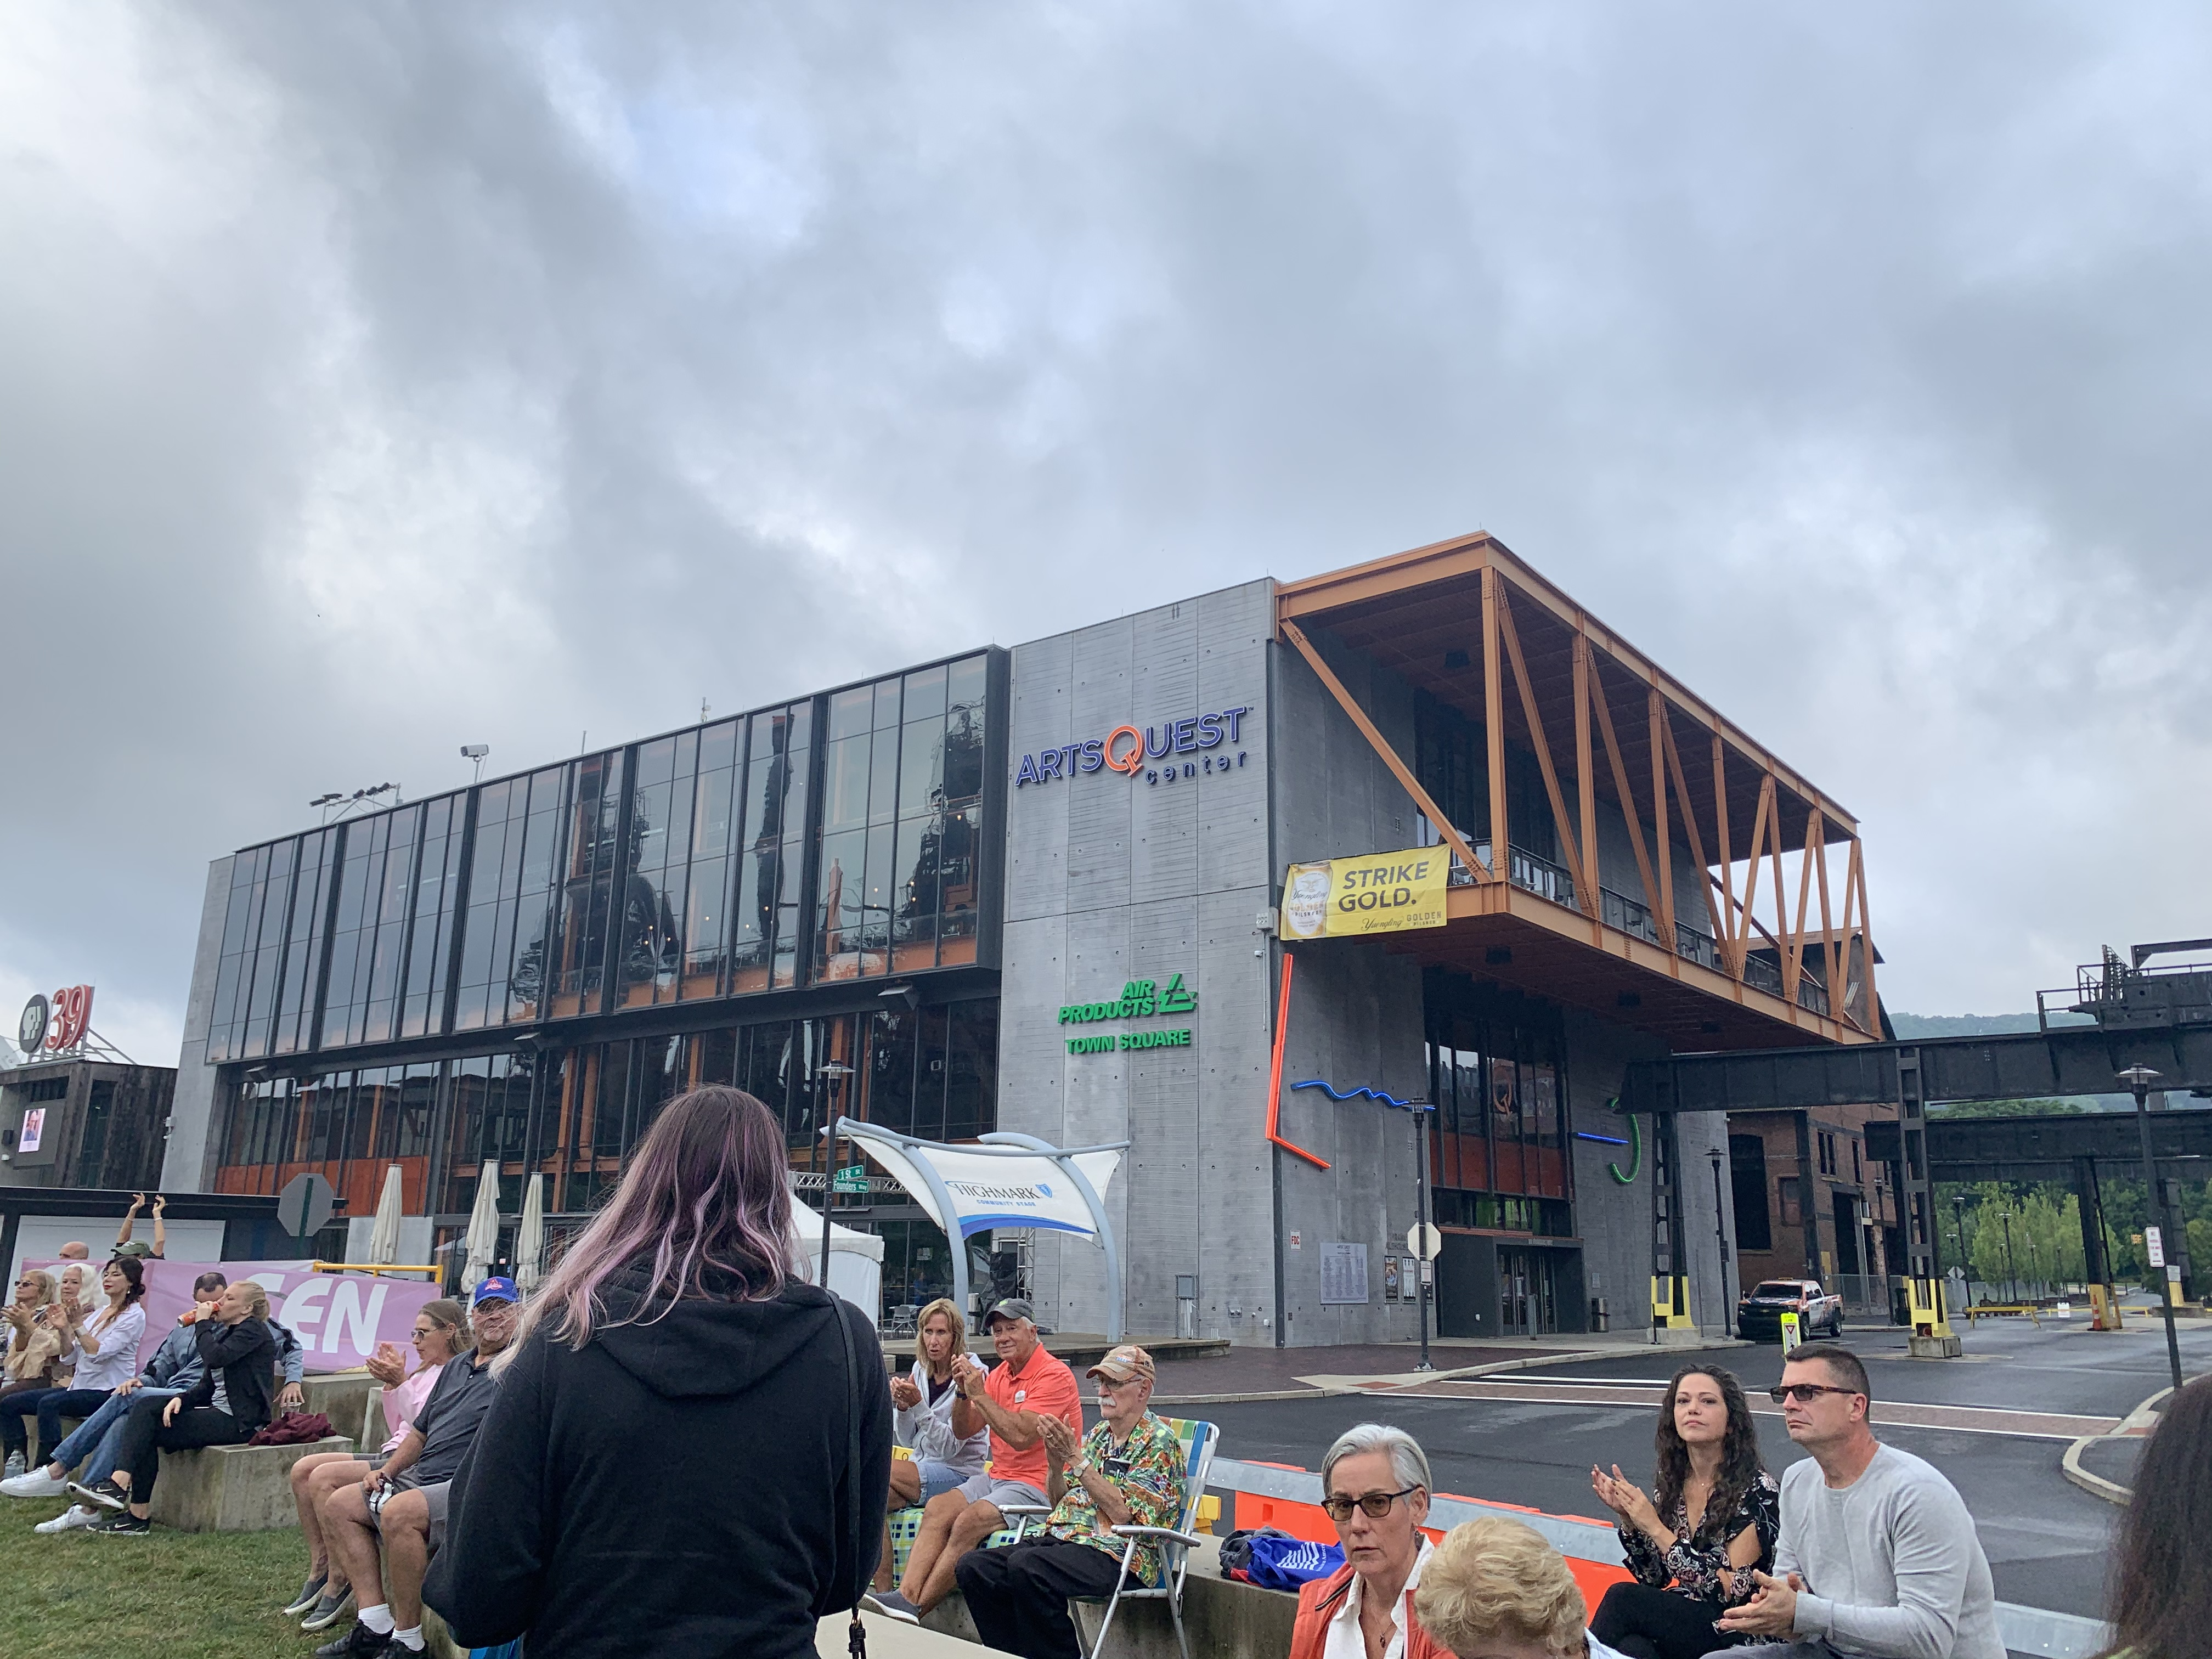 The ArtsQuest Center is a community space located across from the Levitt Pavilion SteelStacks stage that hosts performers and arts programming in Bethlehem, Pa.